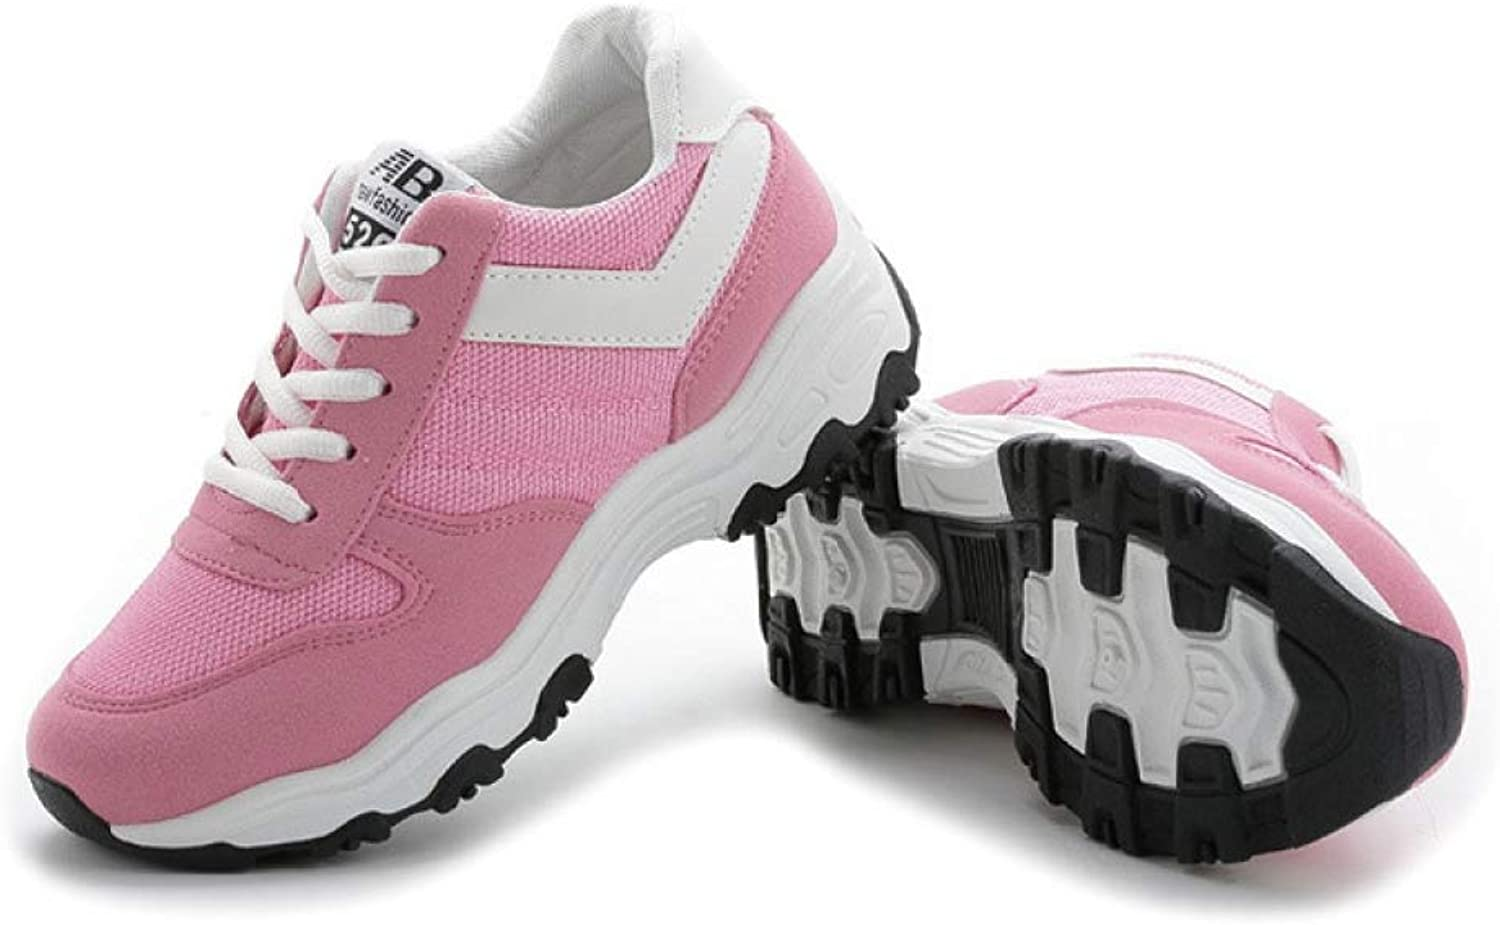 T-JULY Women's Sport shoes Ladies Fashion Lace up Thick Sole Casual Leisure shoes Girl Mesh Breathable Fabric Shallow shoes